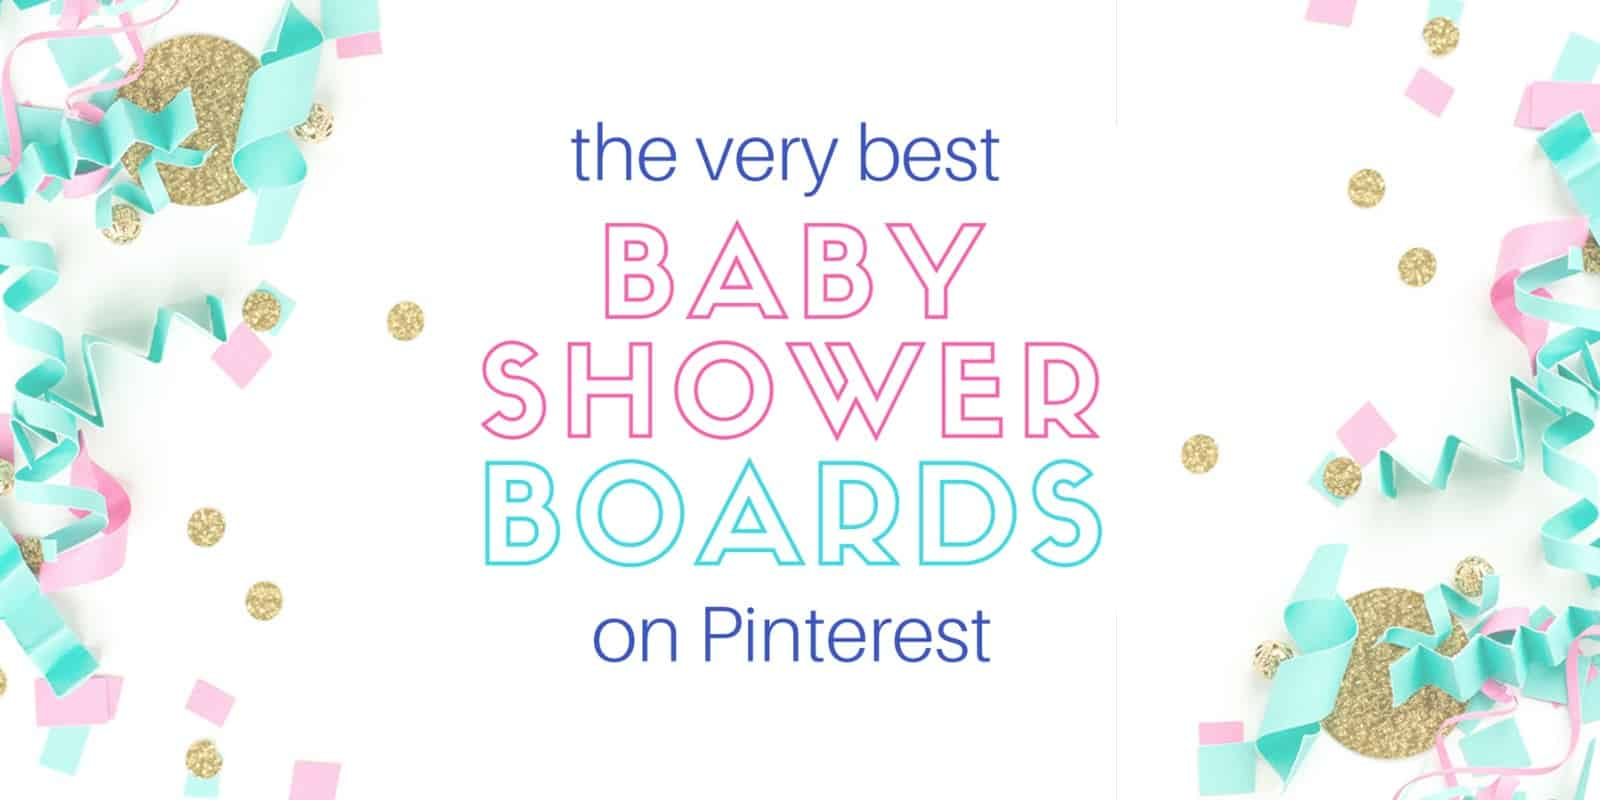 The Best Baby Shower Boards on Pinterest